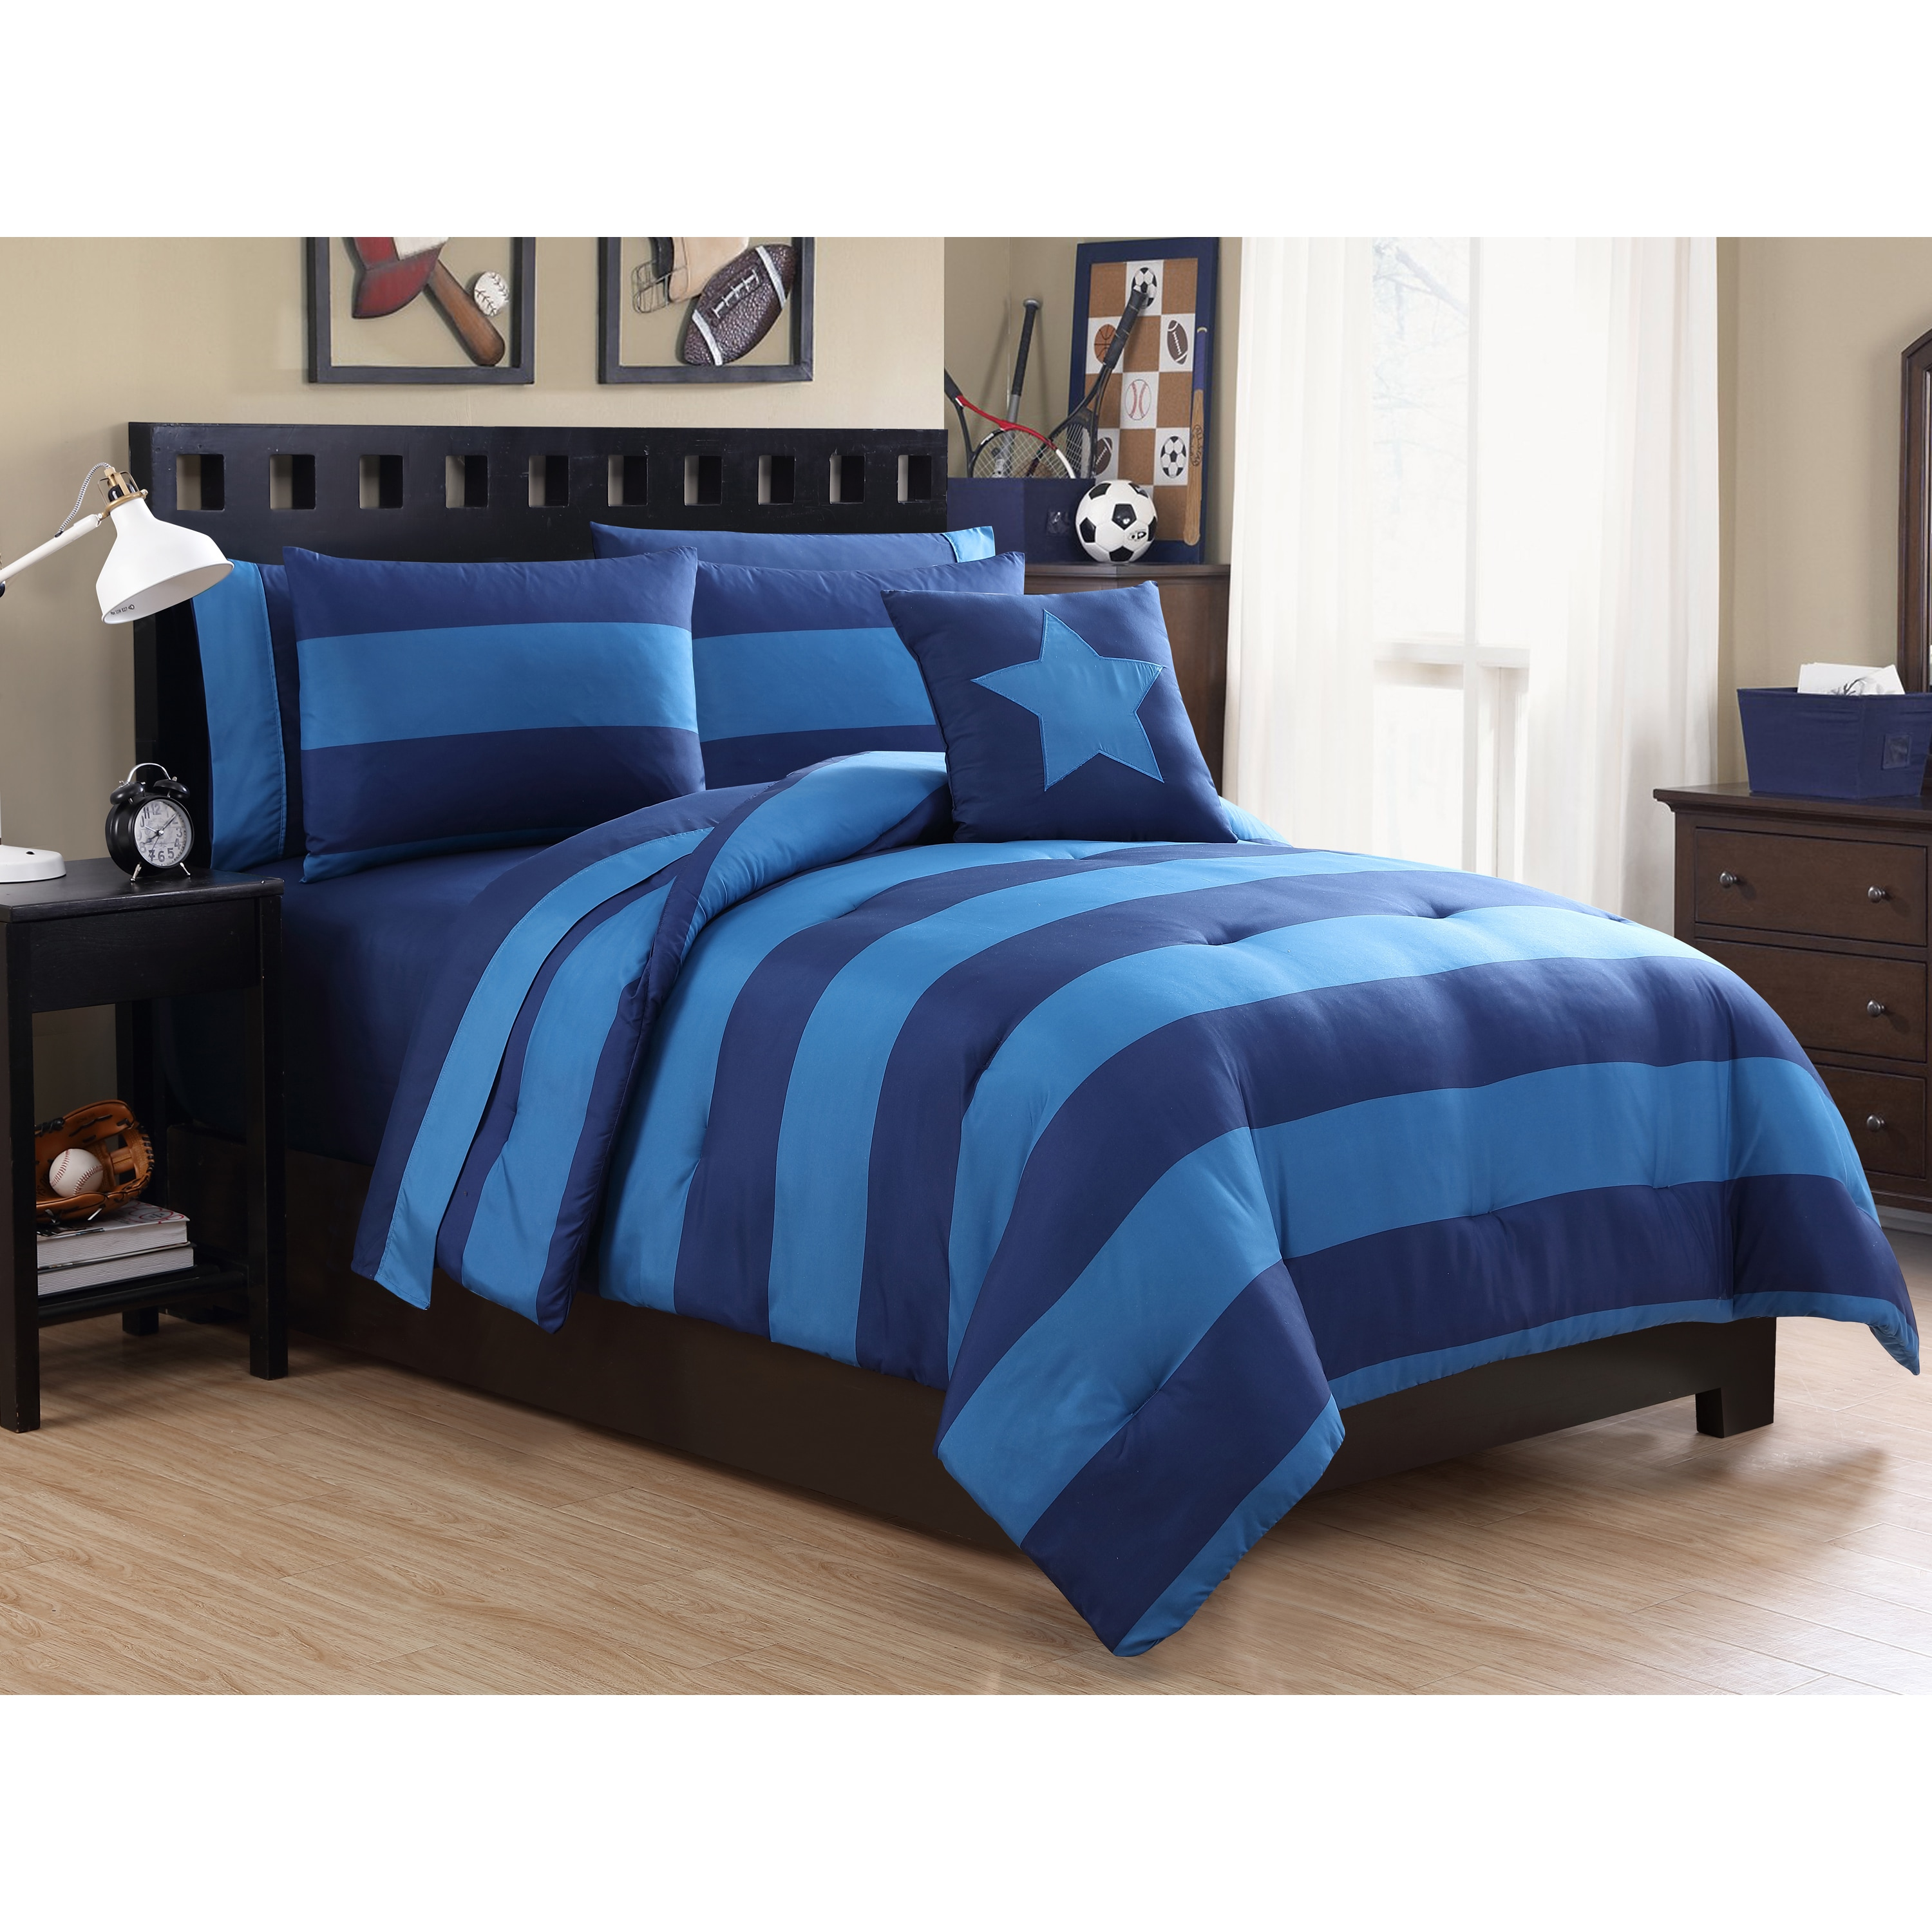 VCNY Rugby 8 piece Bed in a Bag with Sheet Set Free Shipping